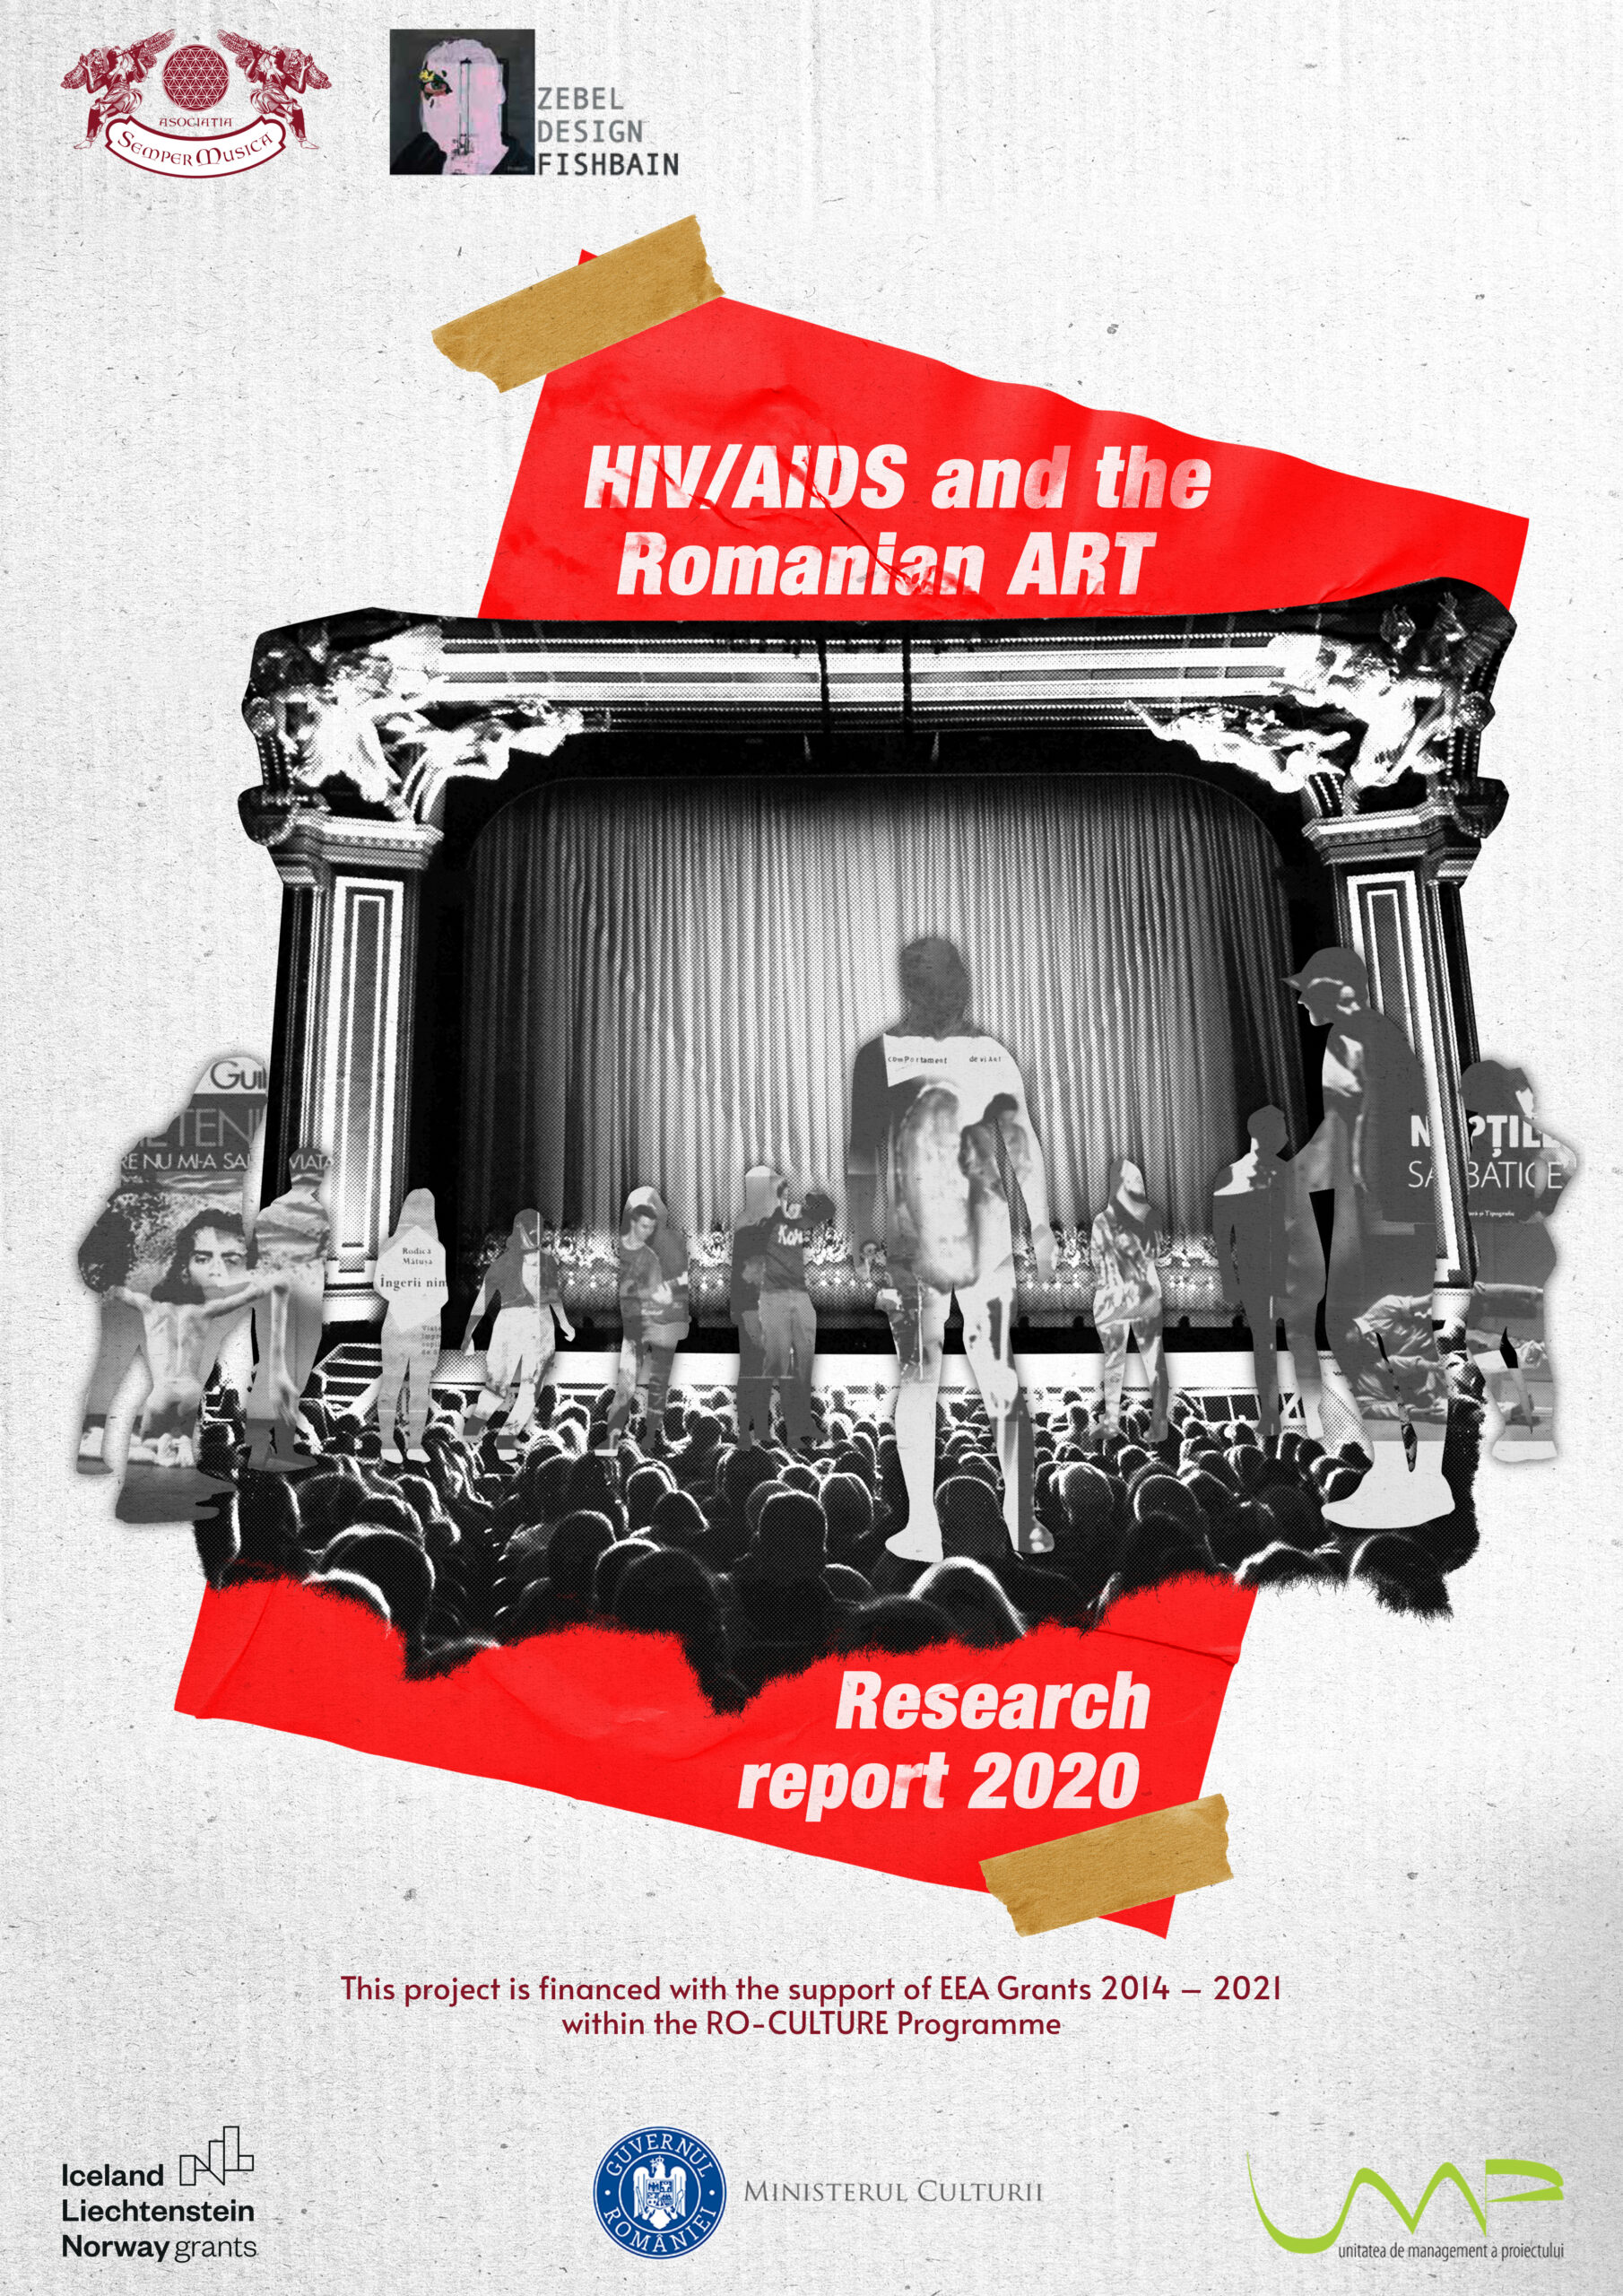 RESEARCH 2020: HIV/AIDS and the Romanian&Norwegian ART